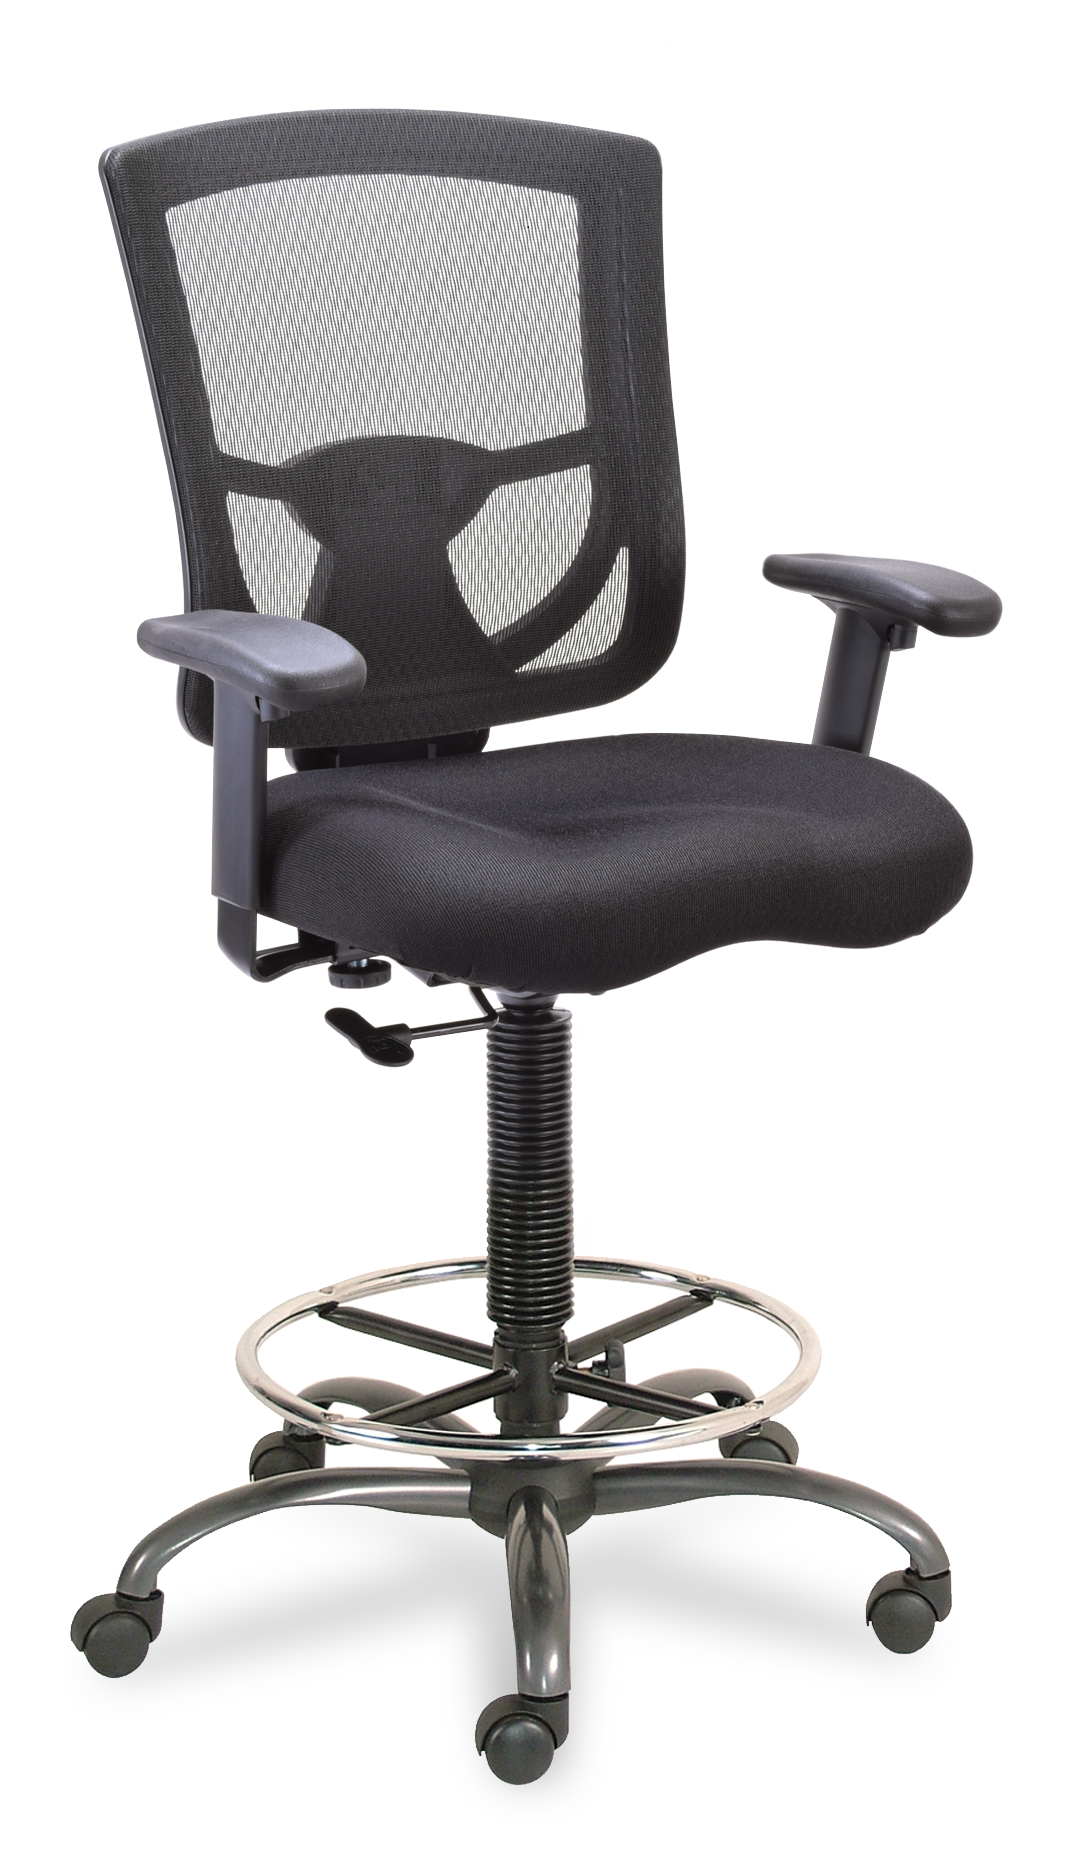 Drone Coolmesh Stool Chair With Optional Arms New 8051